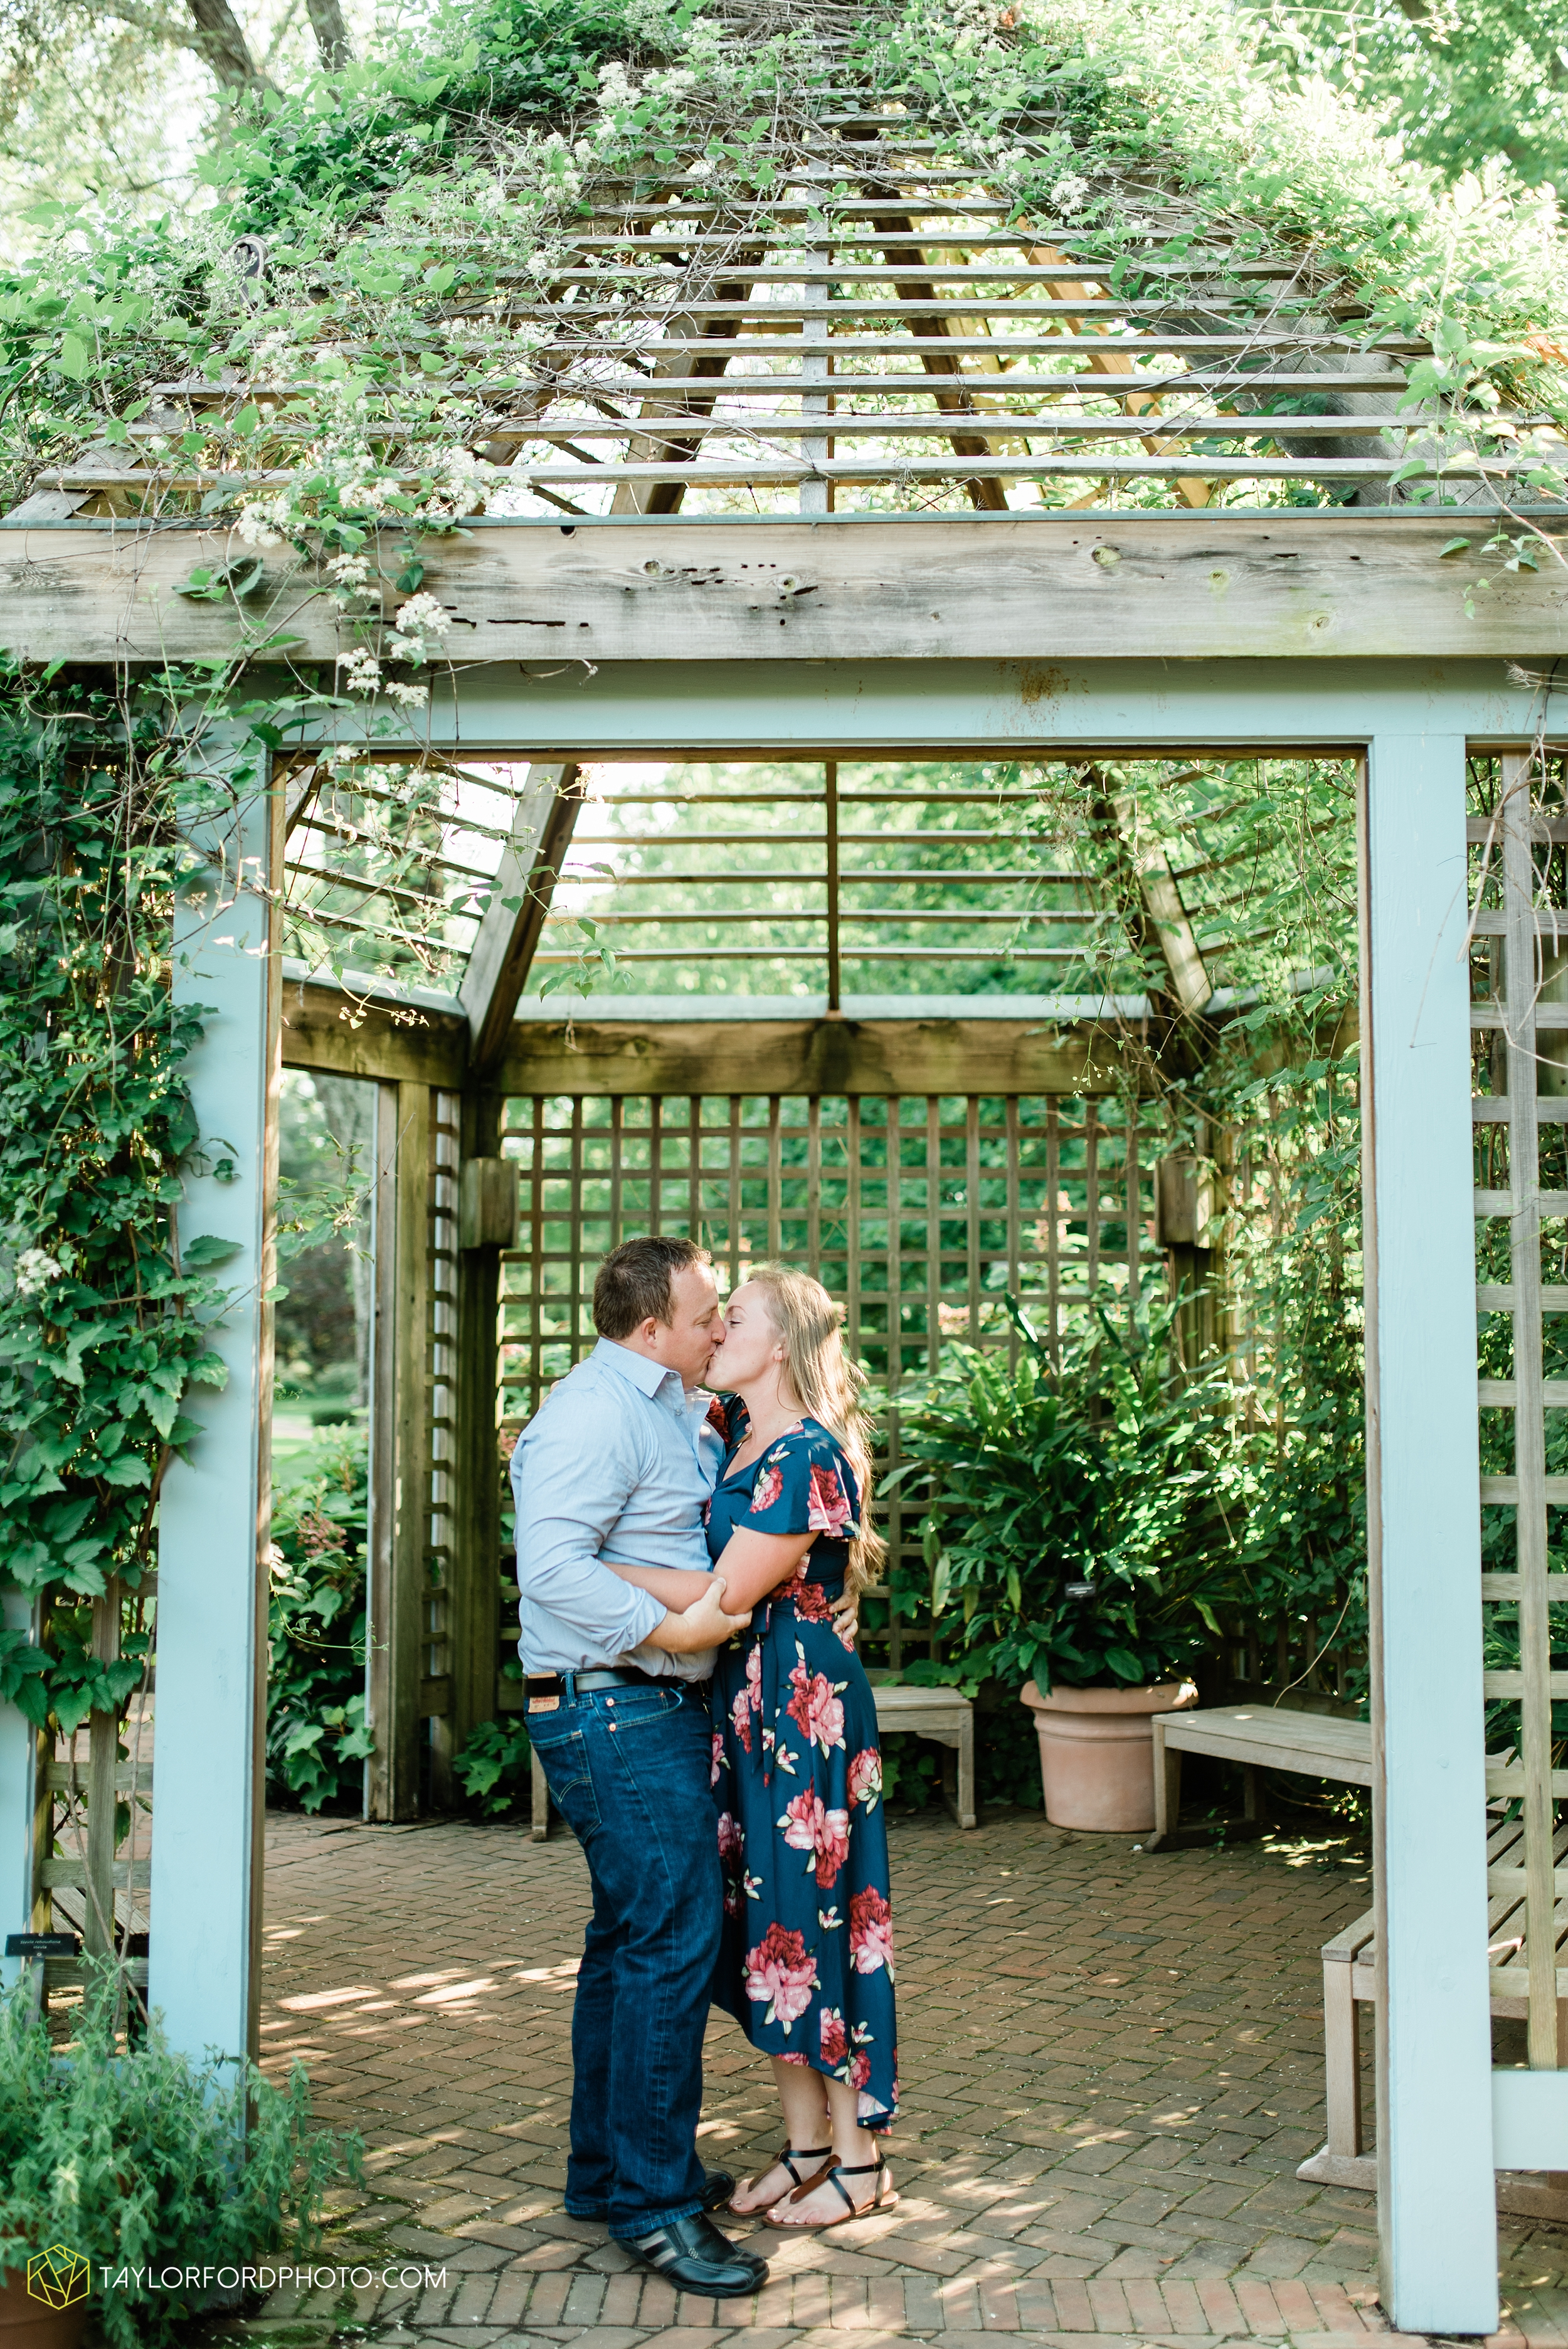 westerville-columbus-ohio-inniswood-metro-park-engagement-wedding-fourth-friday-photographer-Taylor-Ford-Photography_8759.jpg